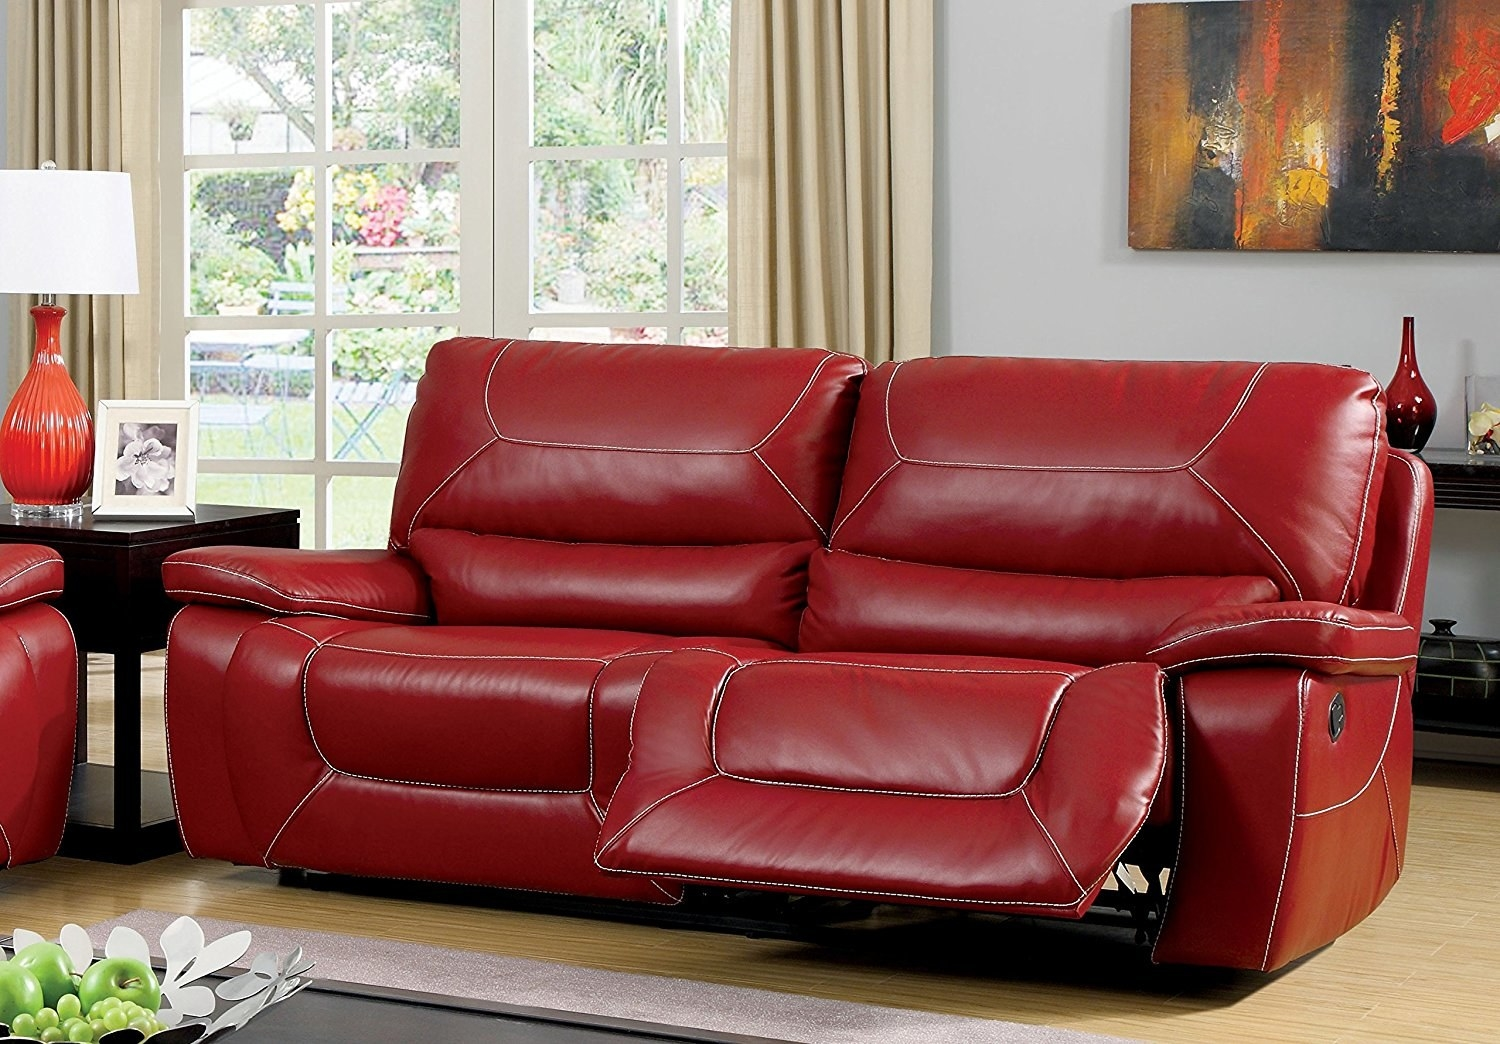 21. A Recliner For Those Who Are A Little More Daring With Their  HGTV Looks. This Is A Really Cool Couch, You Should Go For It.